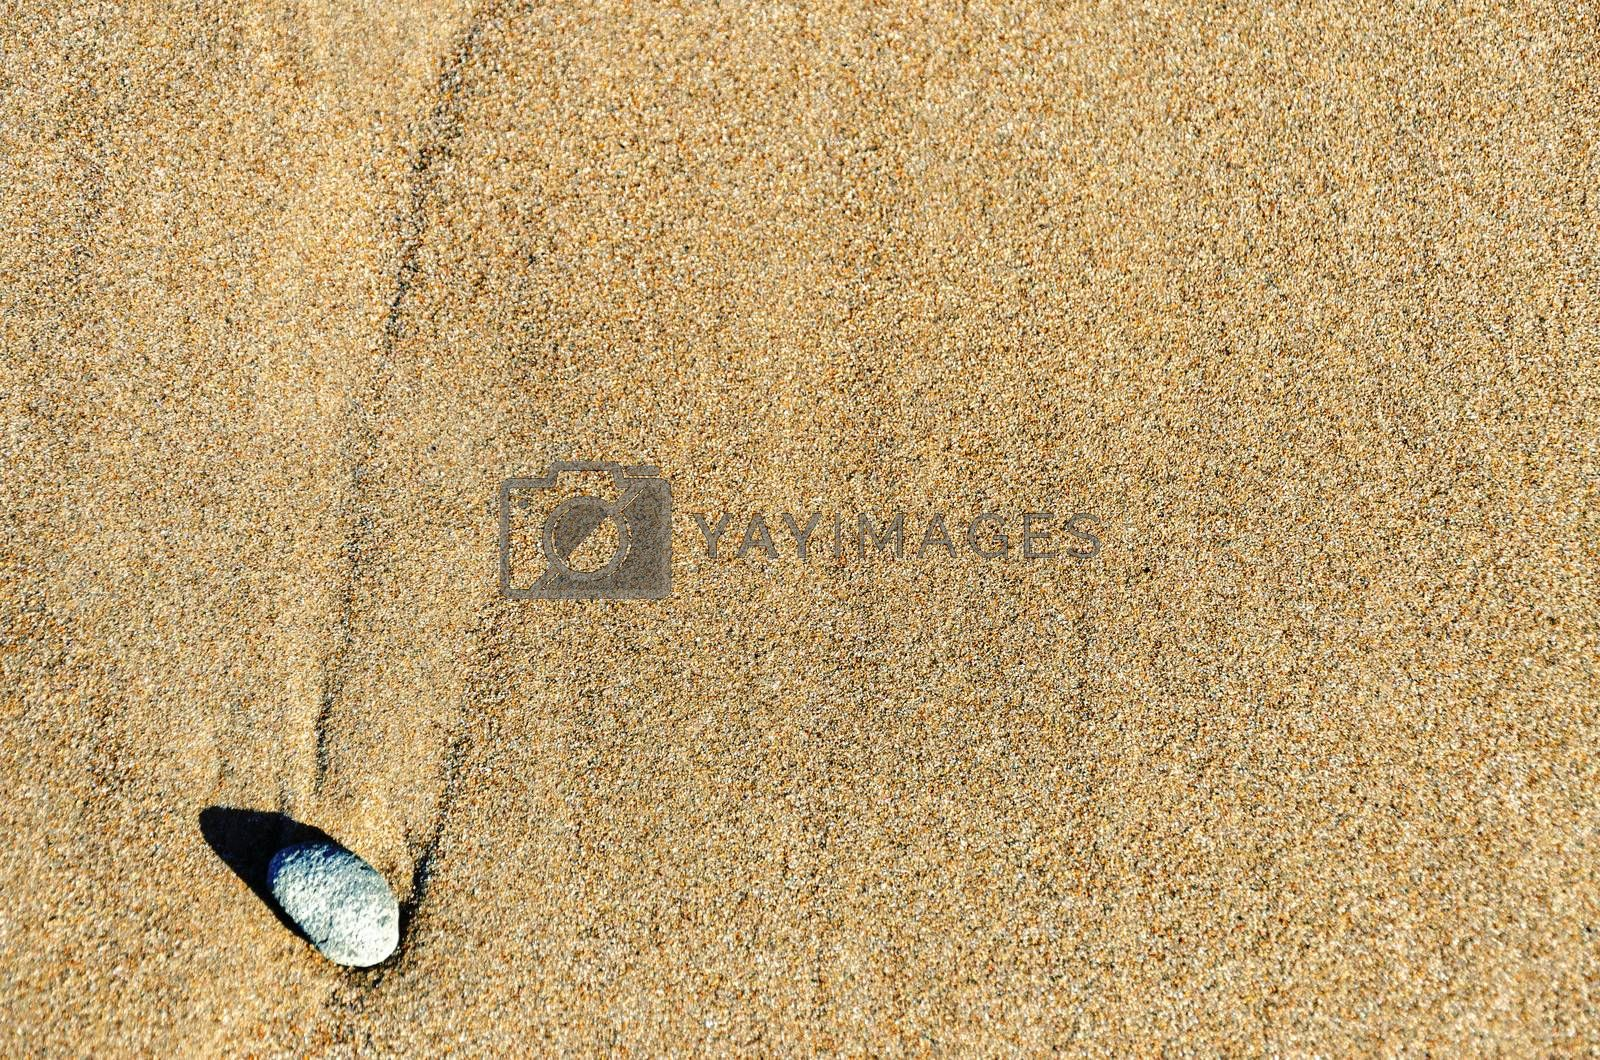 A single rock in rough textured brown sand